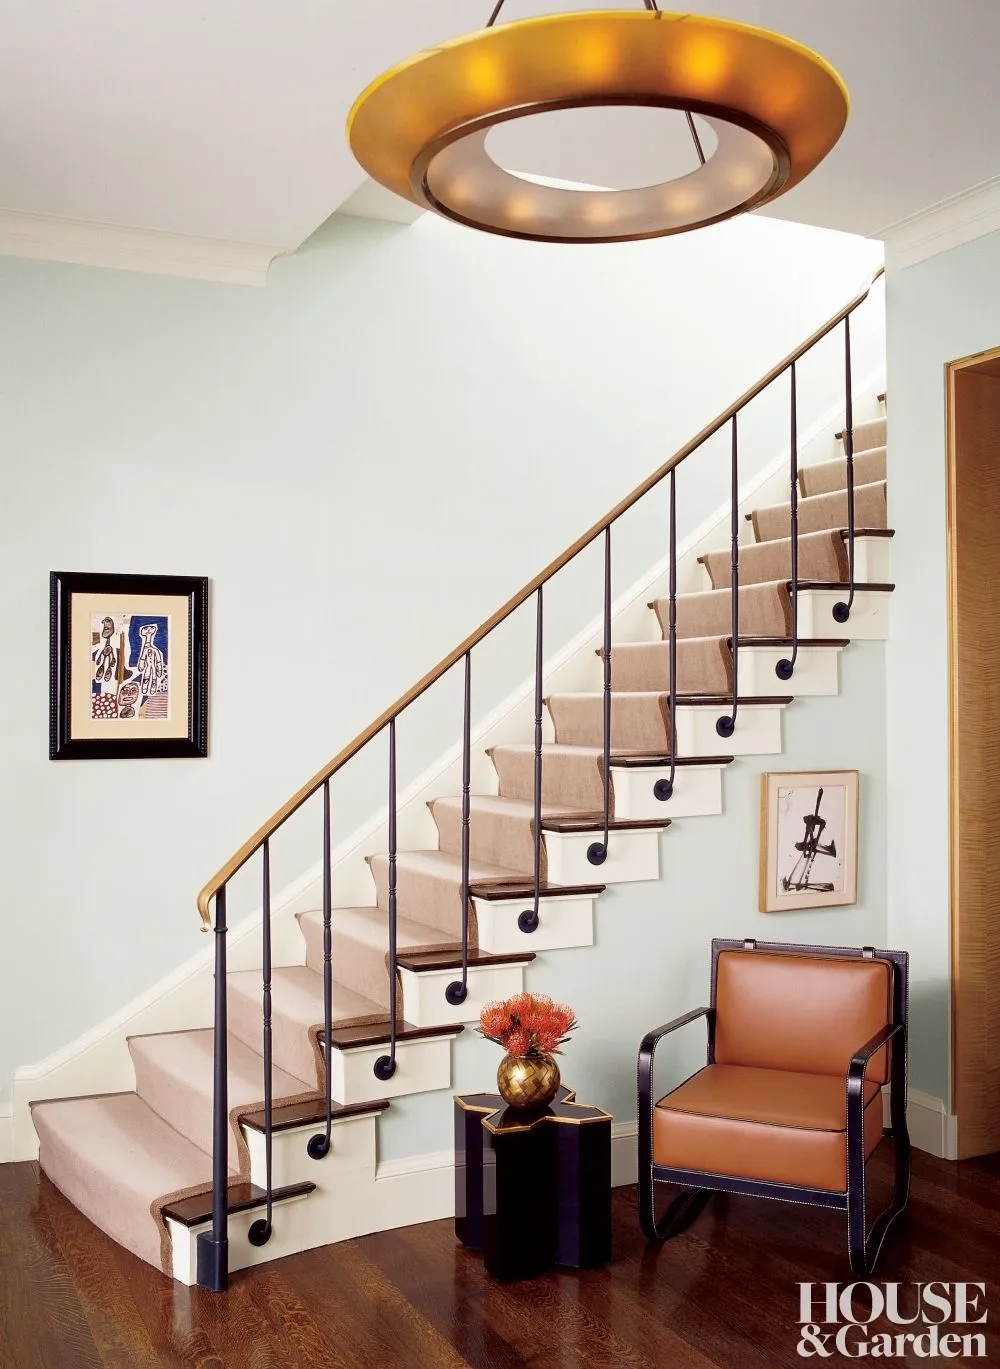 Types Of Stairs Explained Architectural Digest | Space Saving Staircases For Small Homes | Design | Spiral Staircases | Staircase Design | Attic Ladder | Staircase Ideas